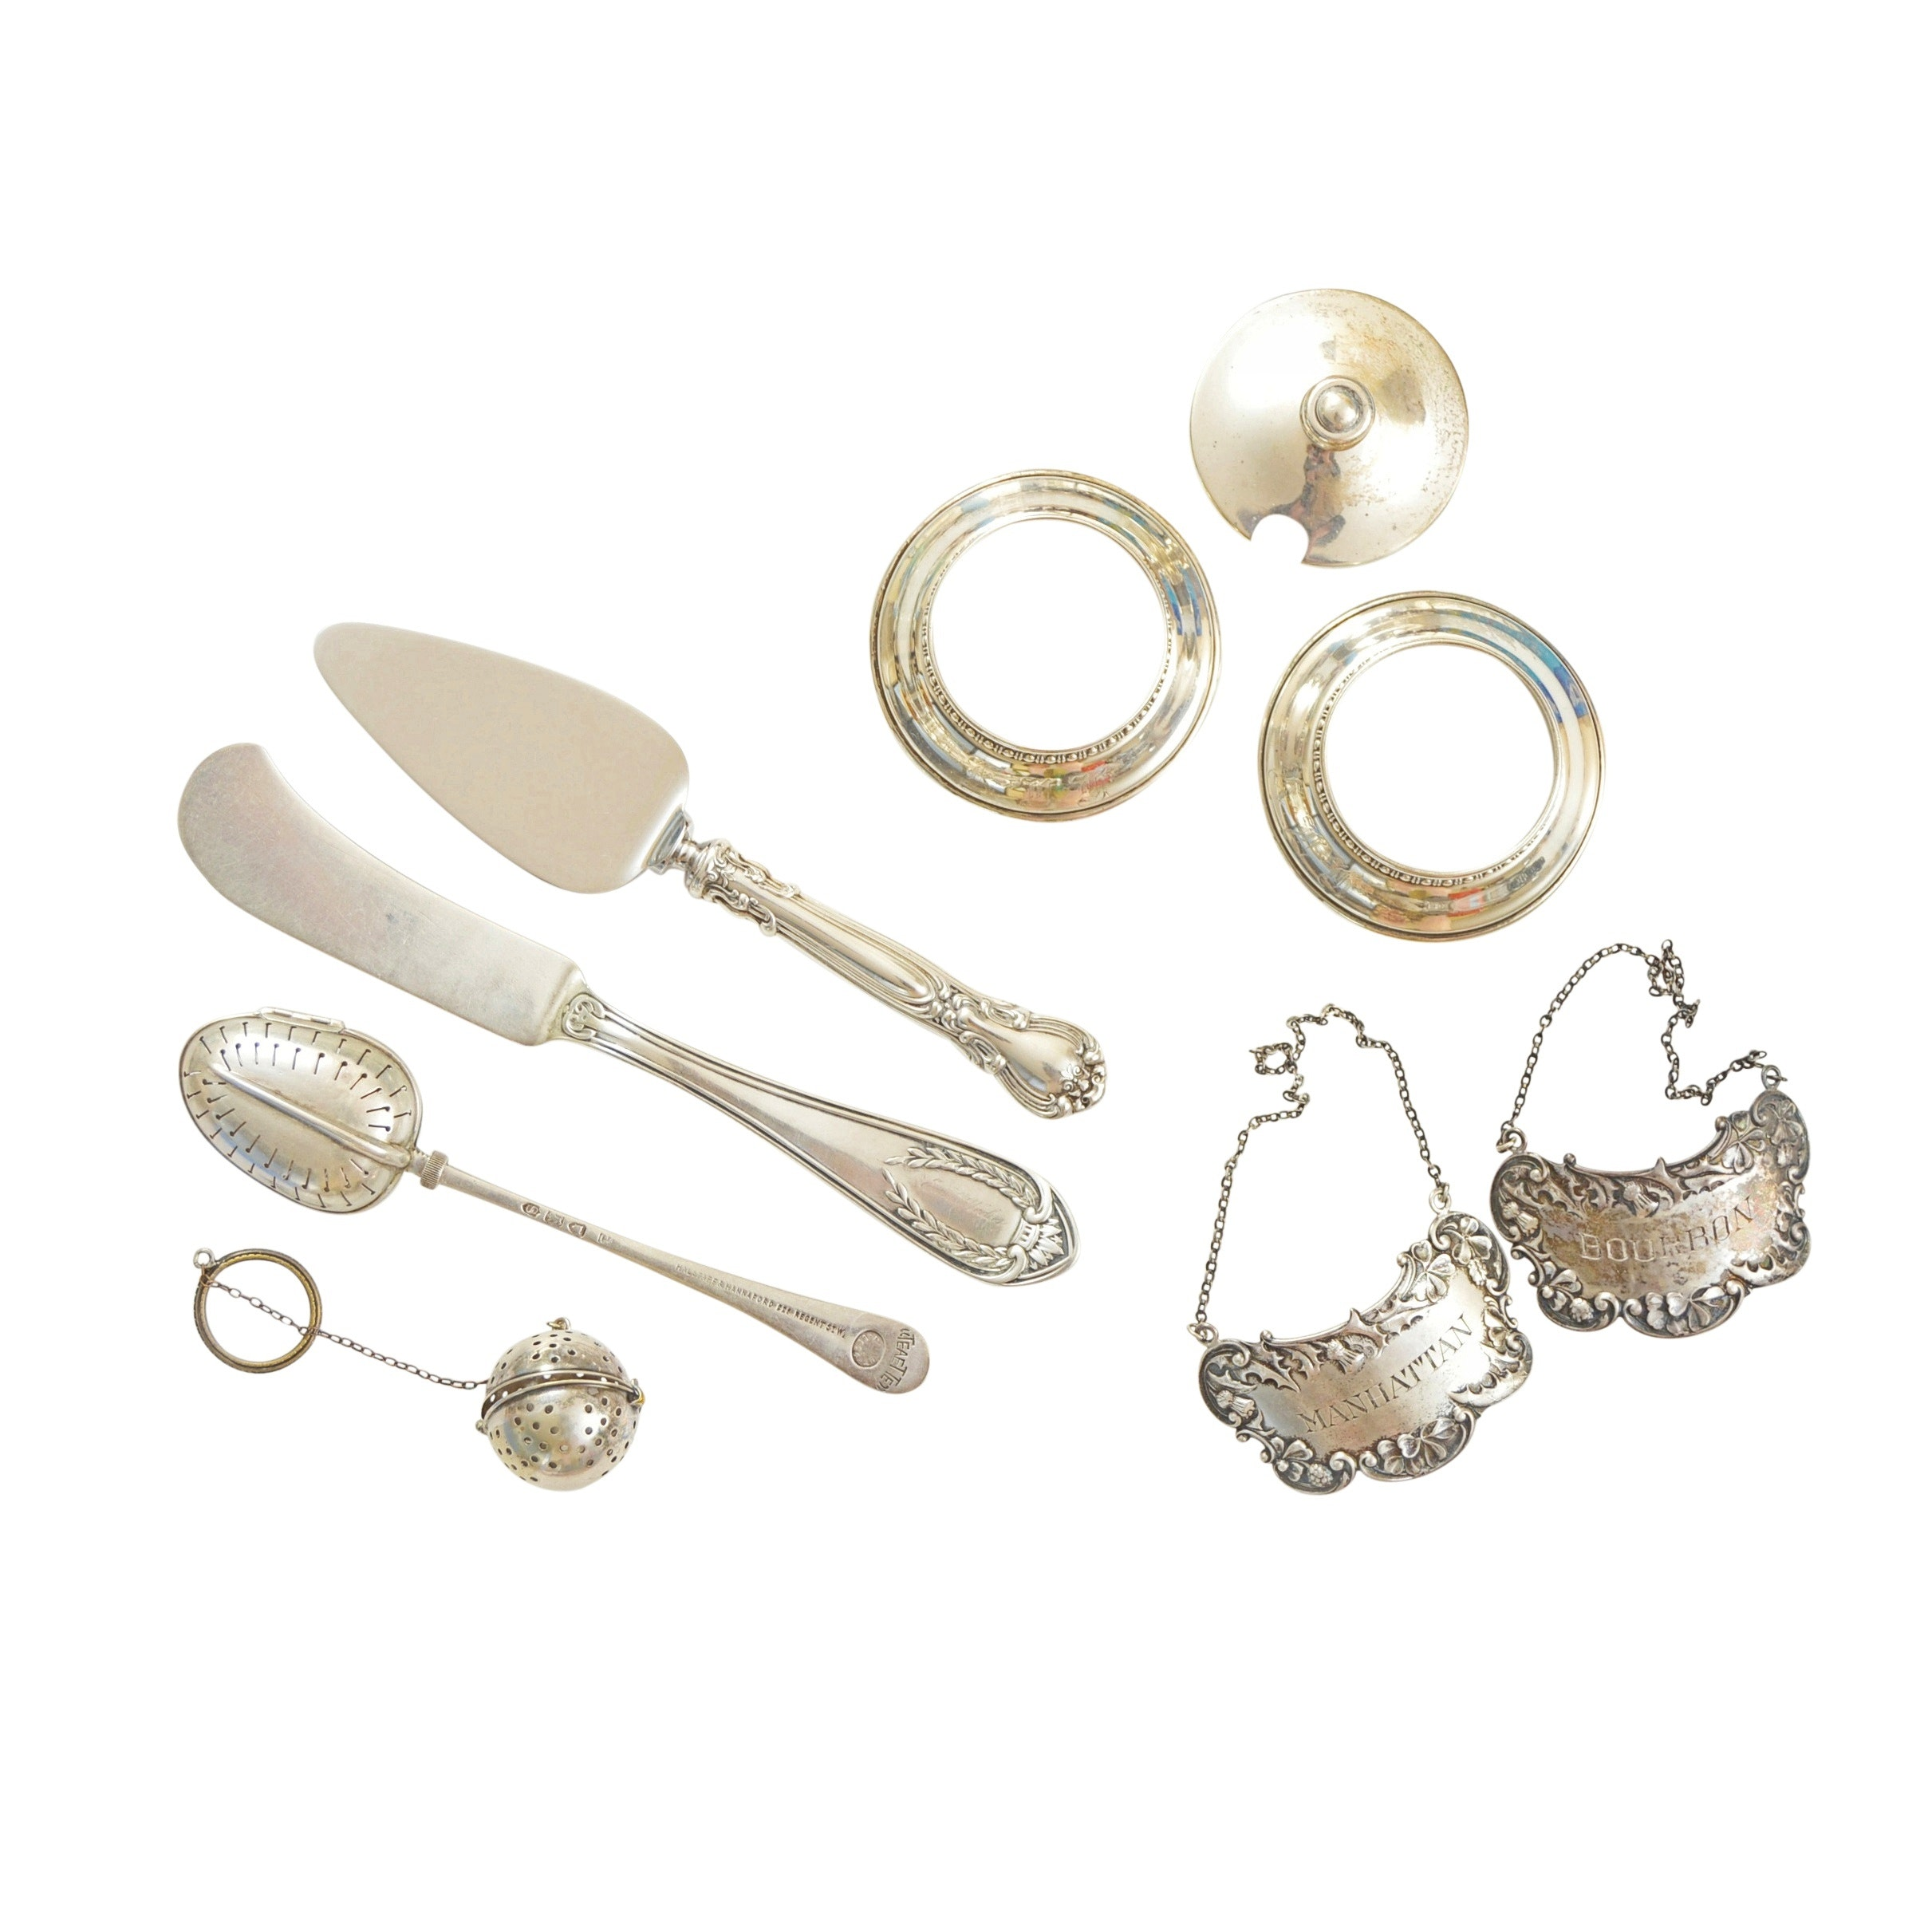 Sterling Silver Accessories with Kirk & Sons, Hawkes and George Grey 1873